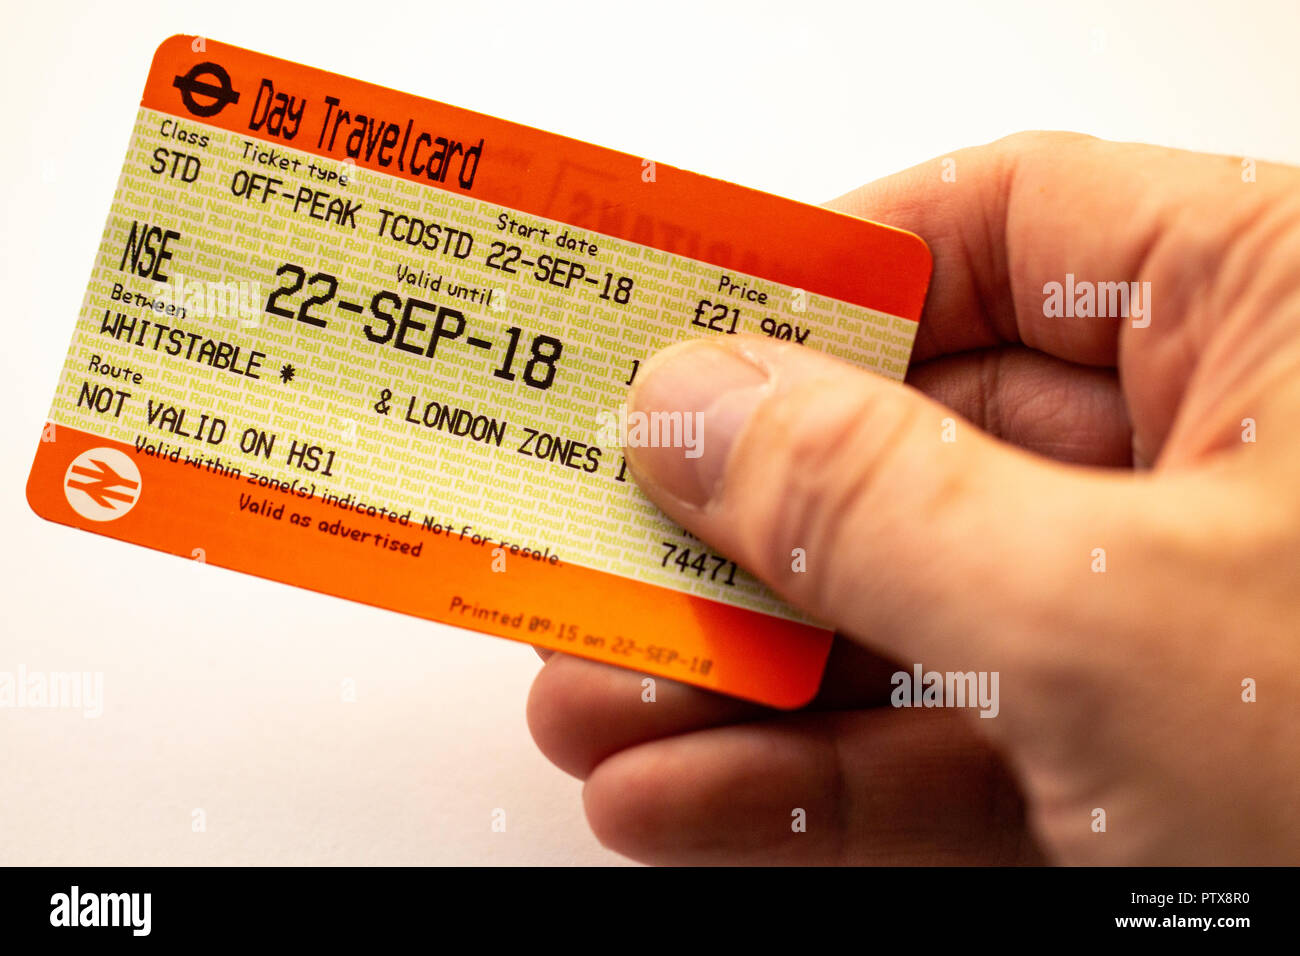 Hand holding British railway ticket, standard off peak one day